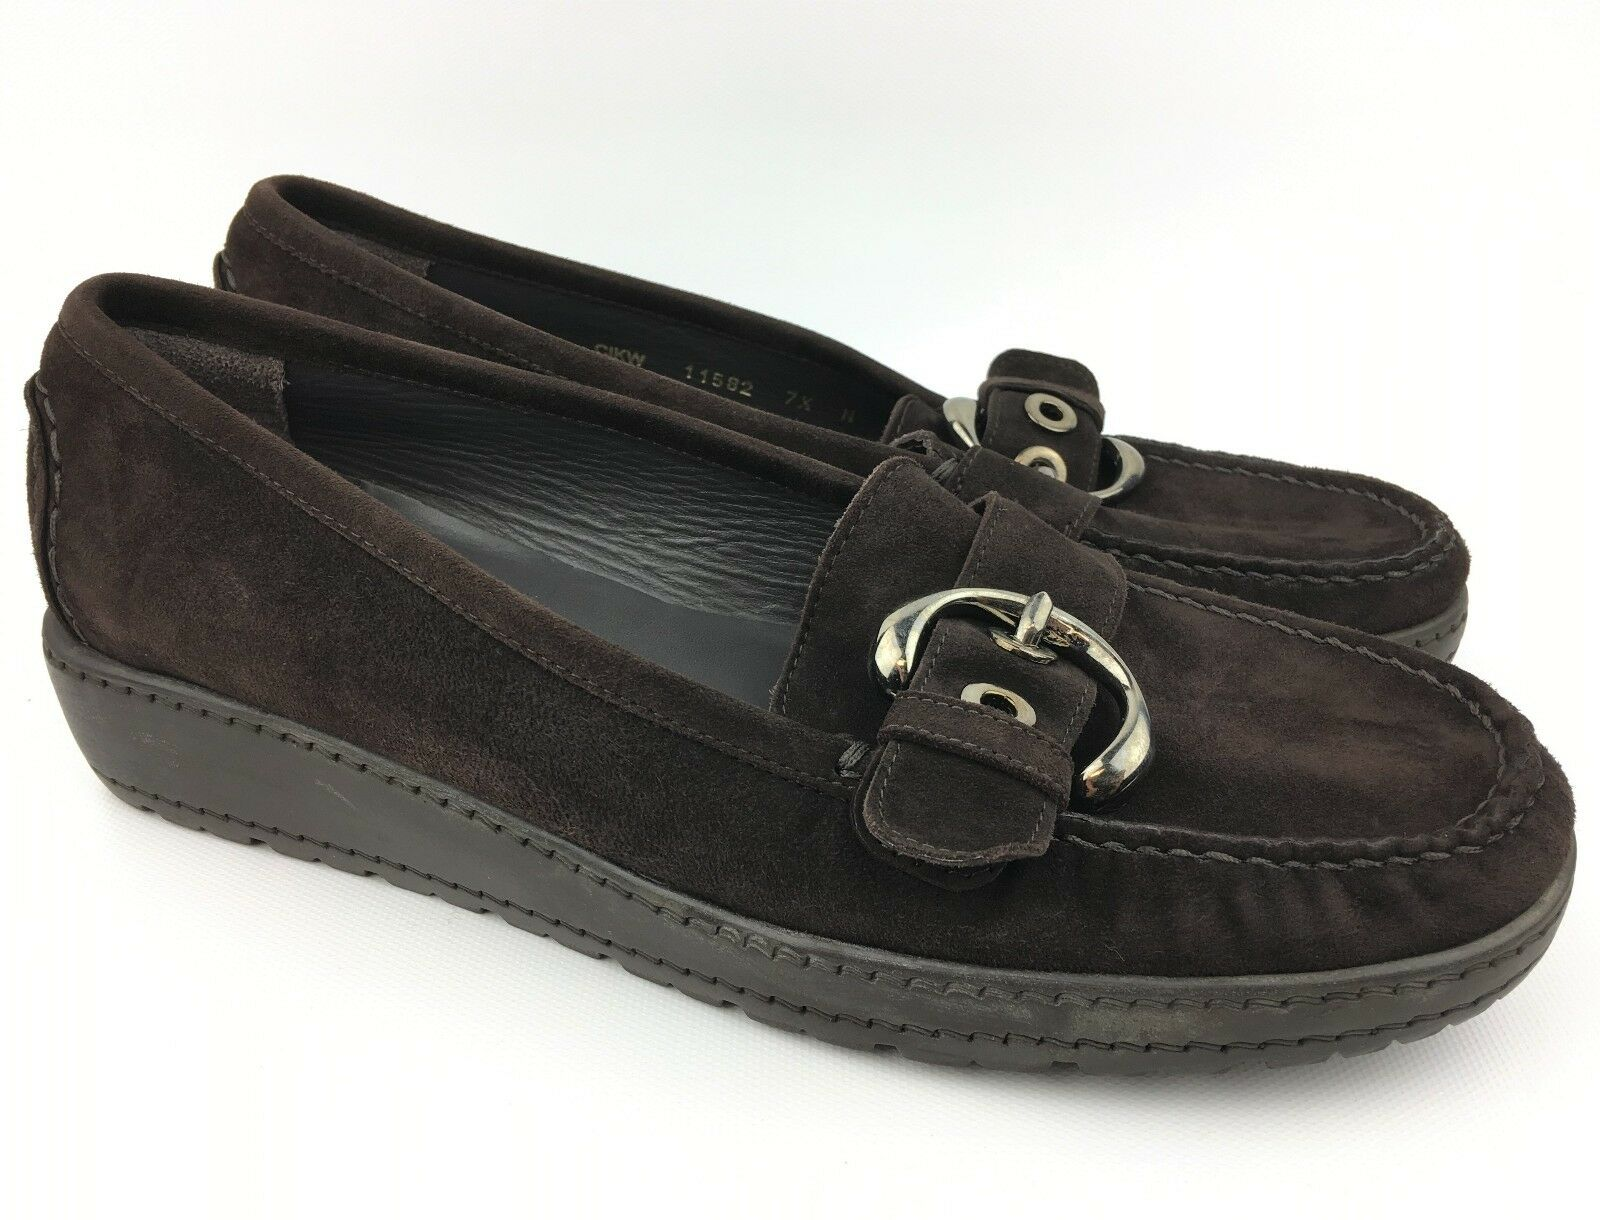 Stuart Weitzman Women's Brown Suede Wedges Flats Loafers sz  US 7.5 N (Narrow)